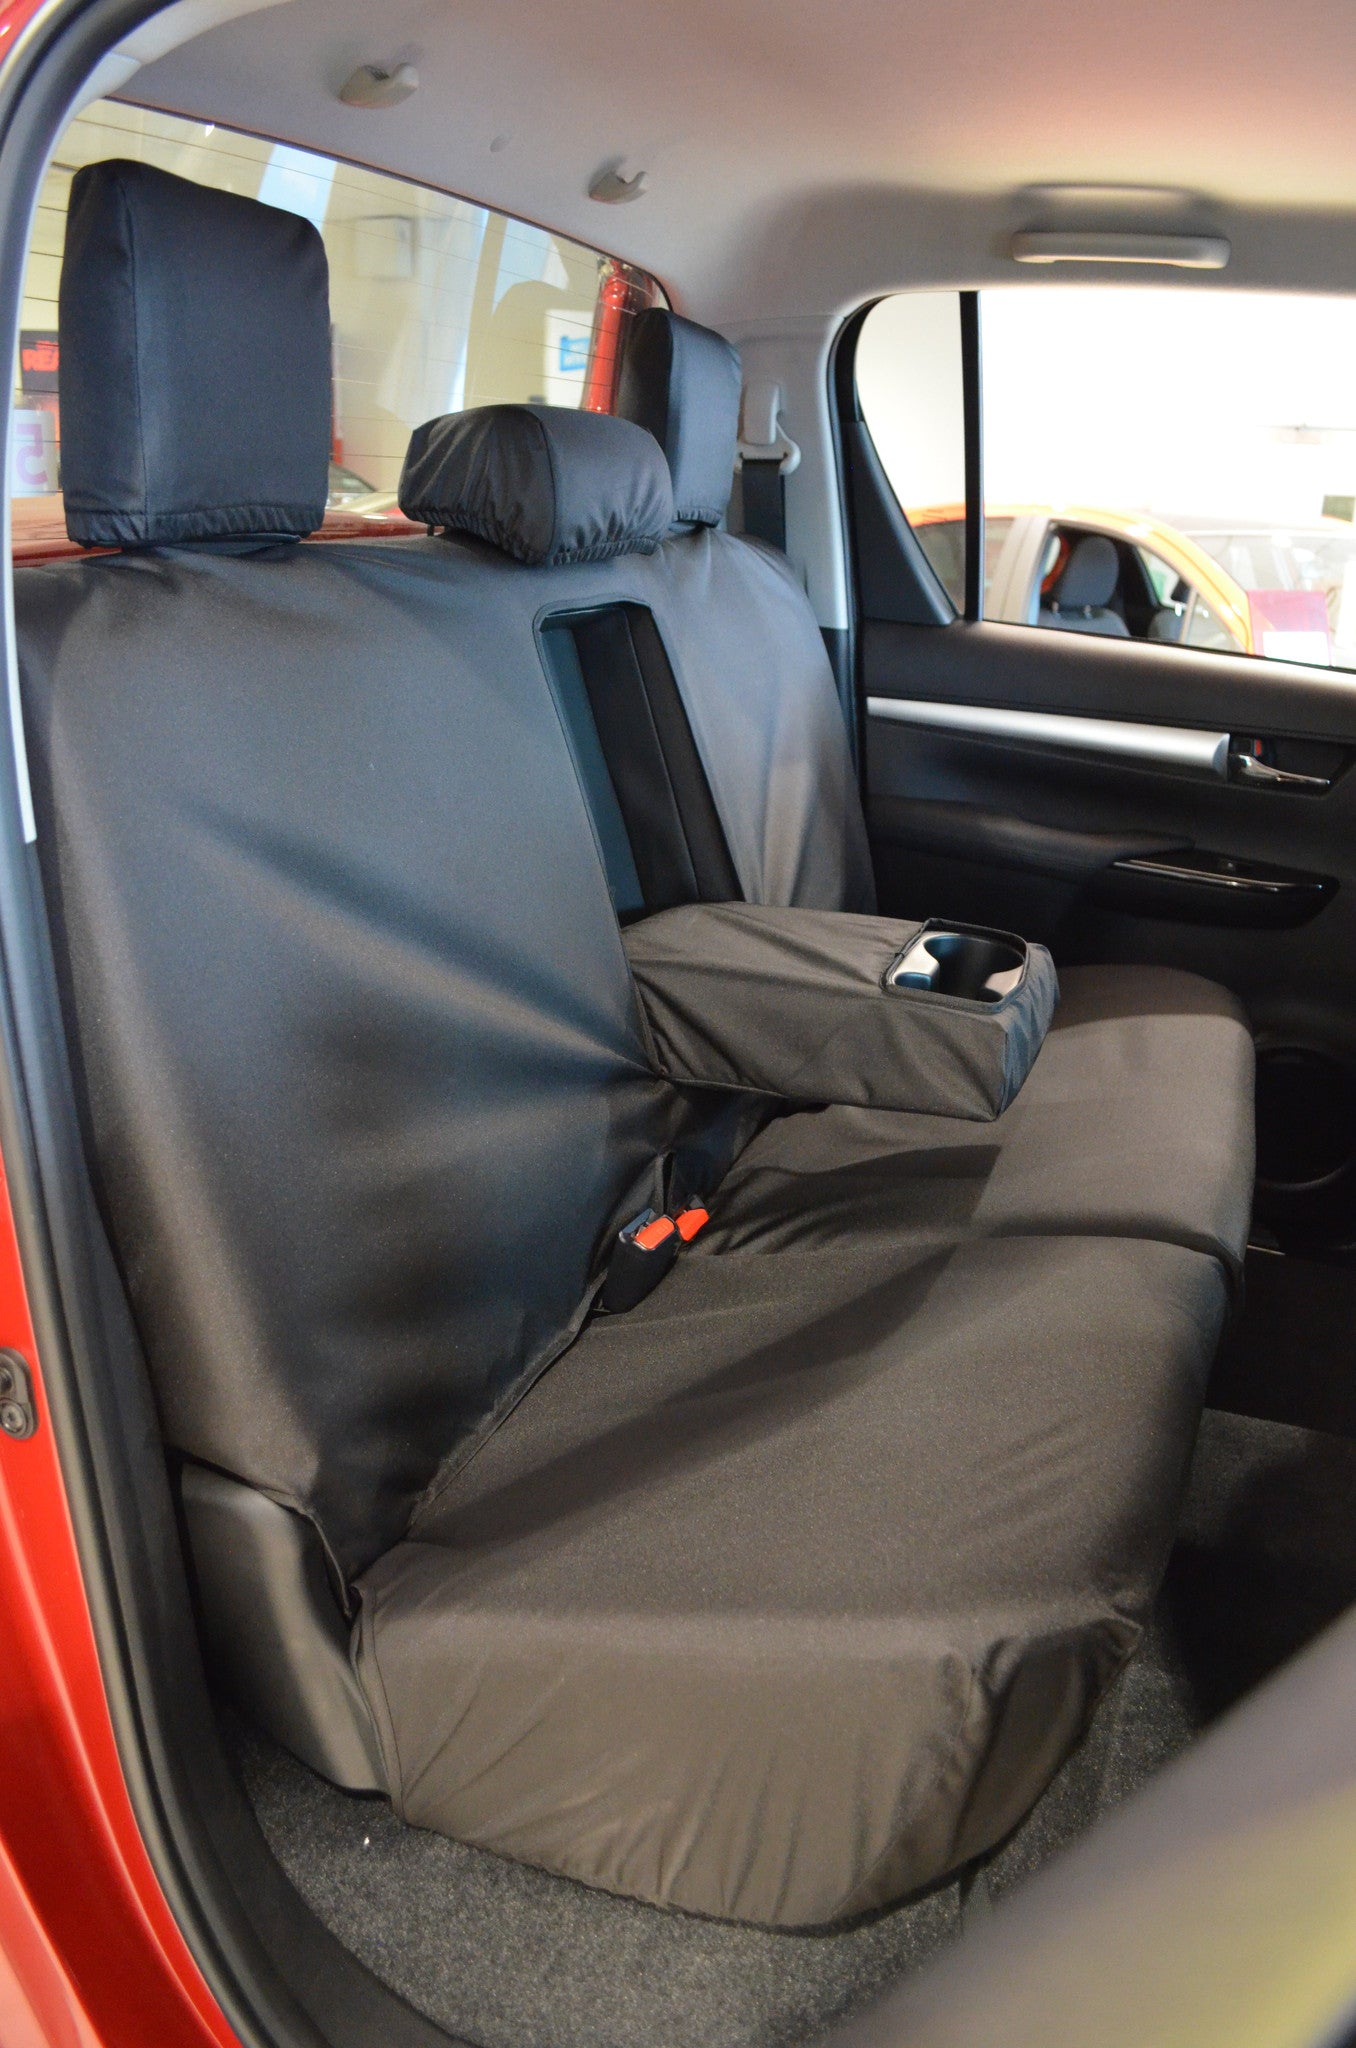 Groovy Toyota Hilux Invincible 2016 Custom Fit Waterproof Seat Covers Short Links Chair Design For Home Short Linksinfo